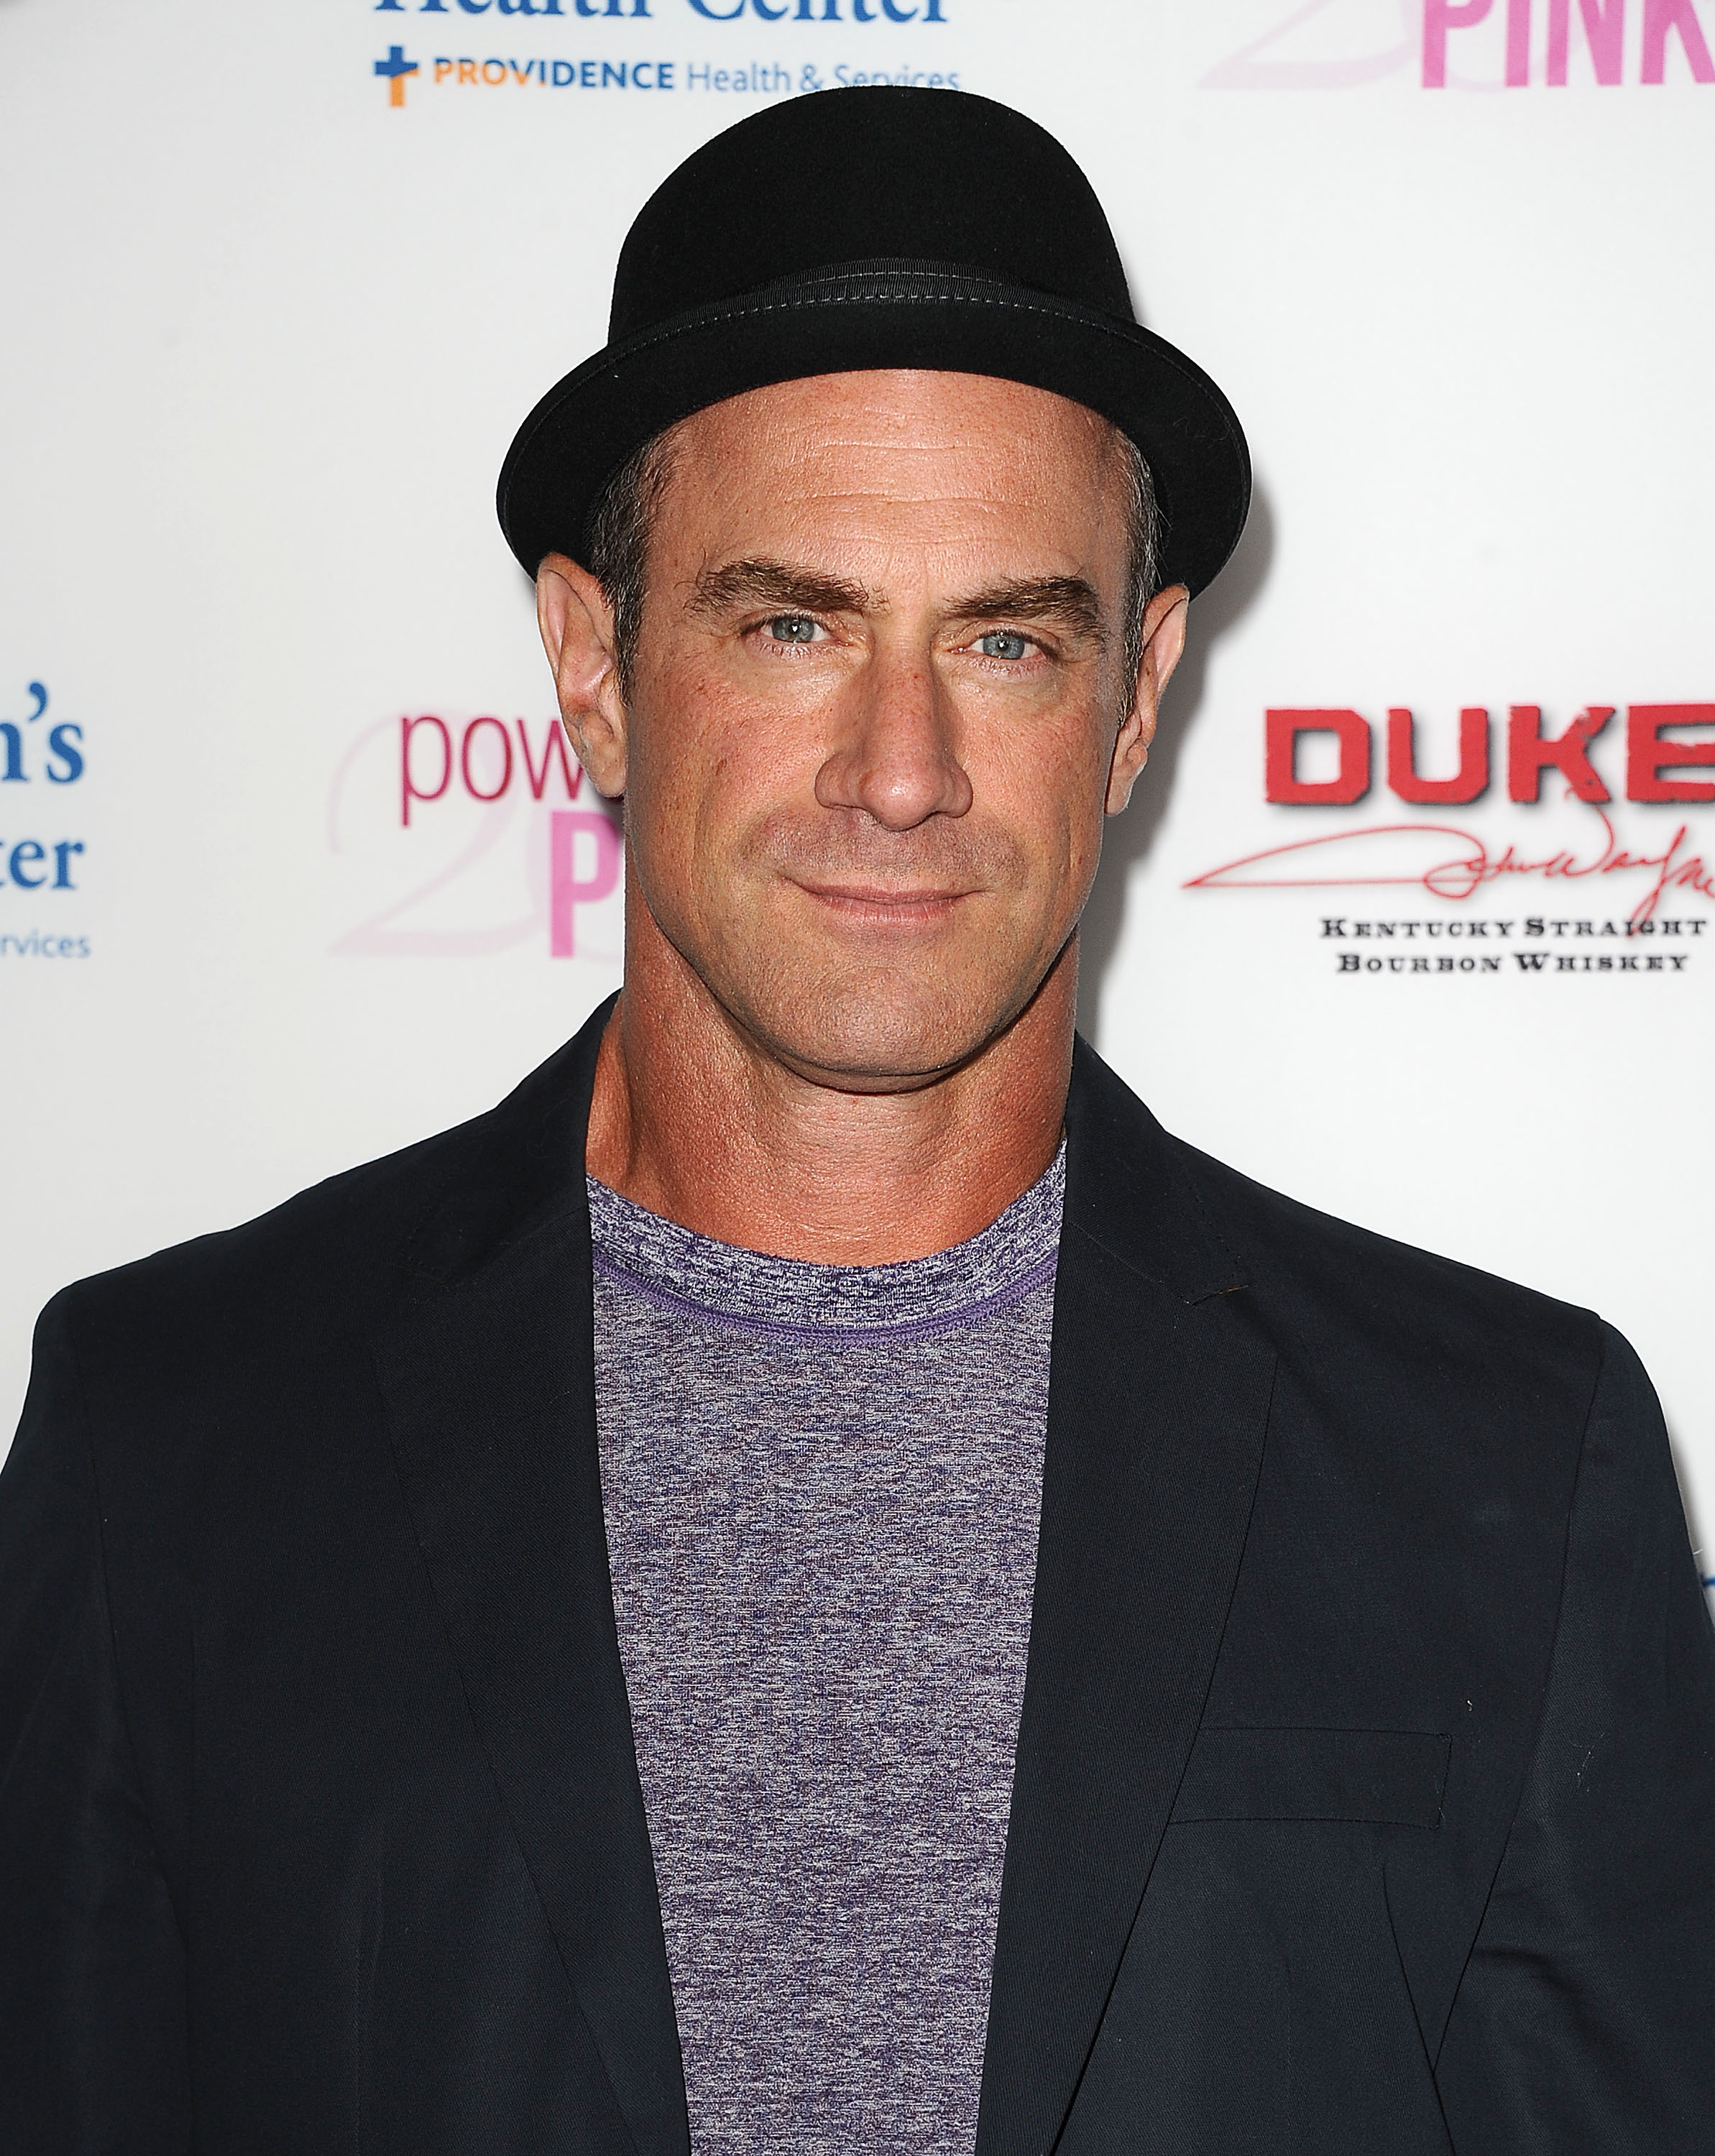 Christopher Meloni attends the 2014 Power of Pink in West Hollywood, California on October 23, 2014.